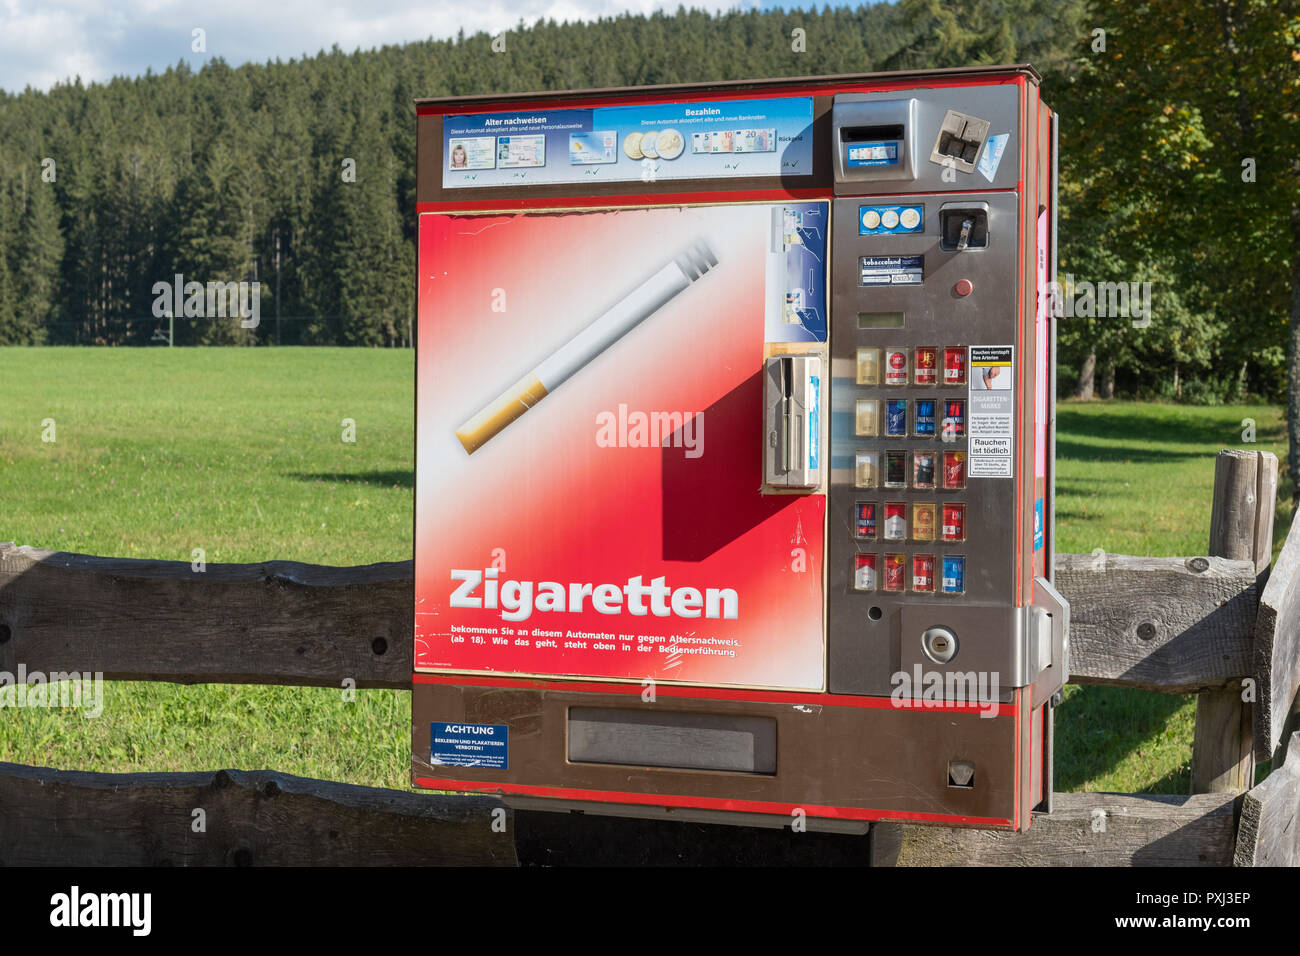 cigarette vending machine in the tourist village of Titisee-Neustadt, Black Forest, Germany - Stock Image